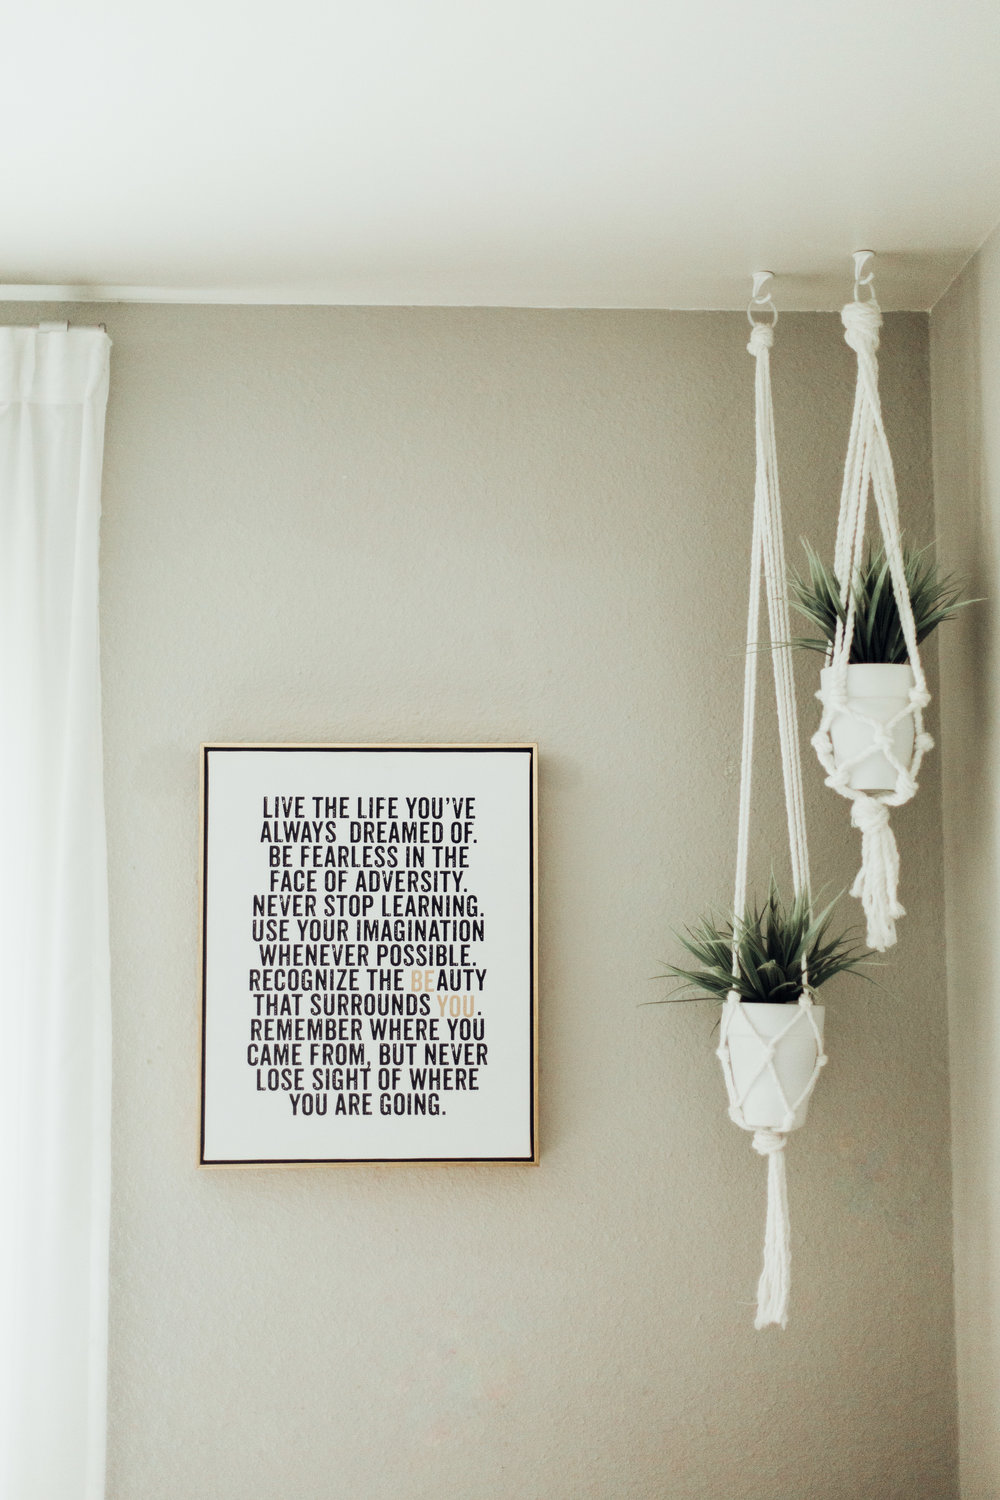 Plant Daily Reminders To Fearlessly Pursue Your Dreams Thoughts